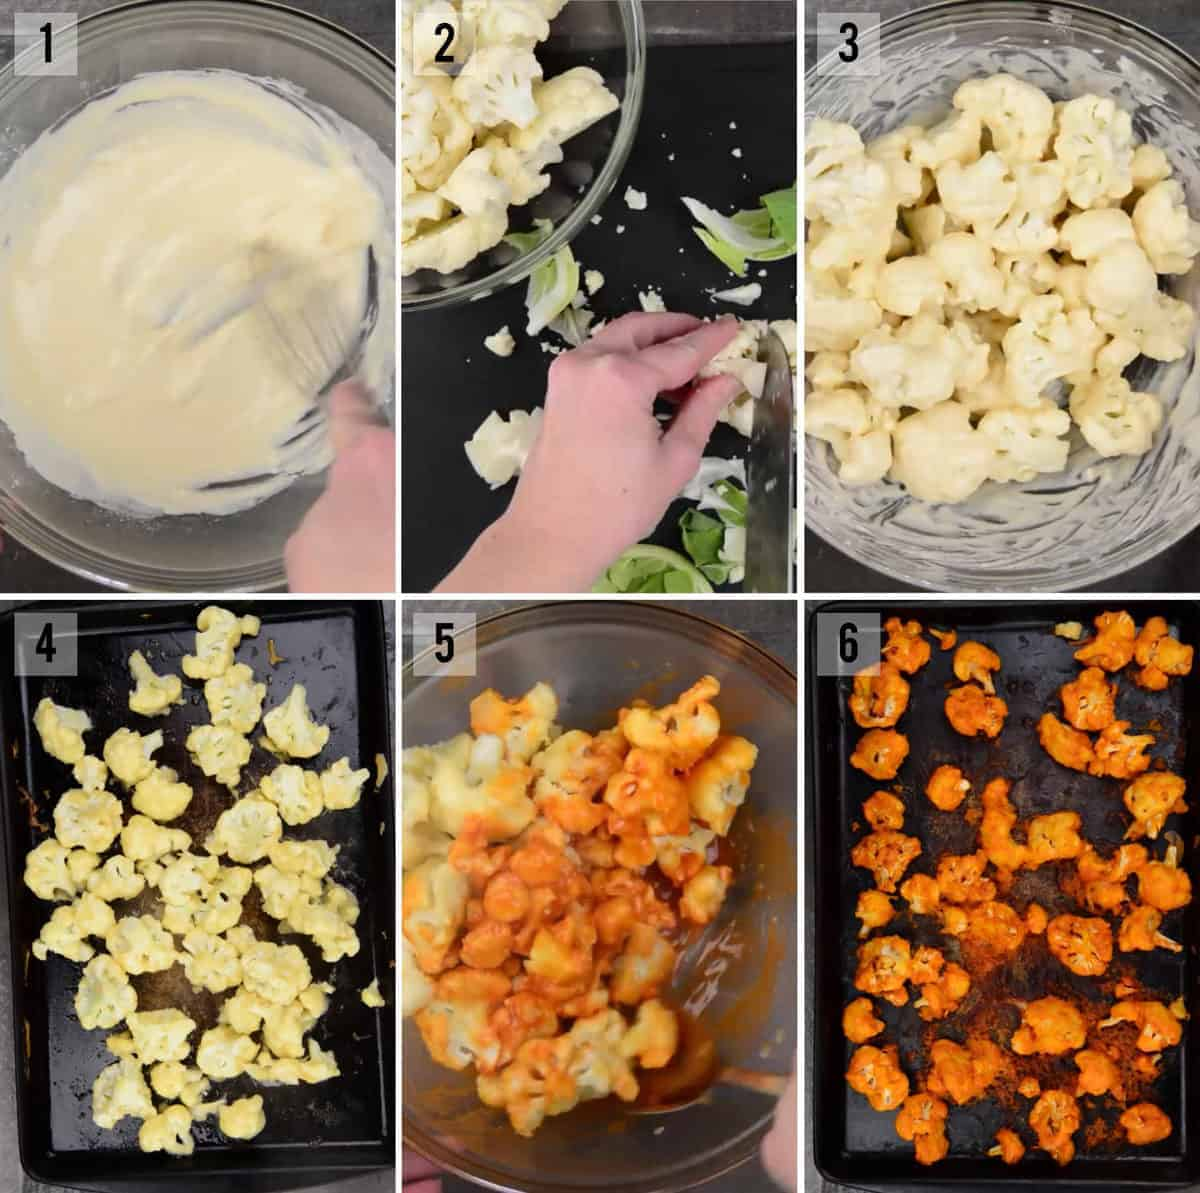 step by step process photos to make Buffalo cauliflower